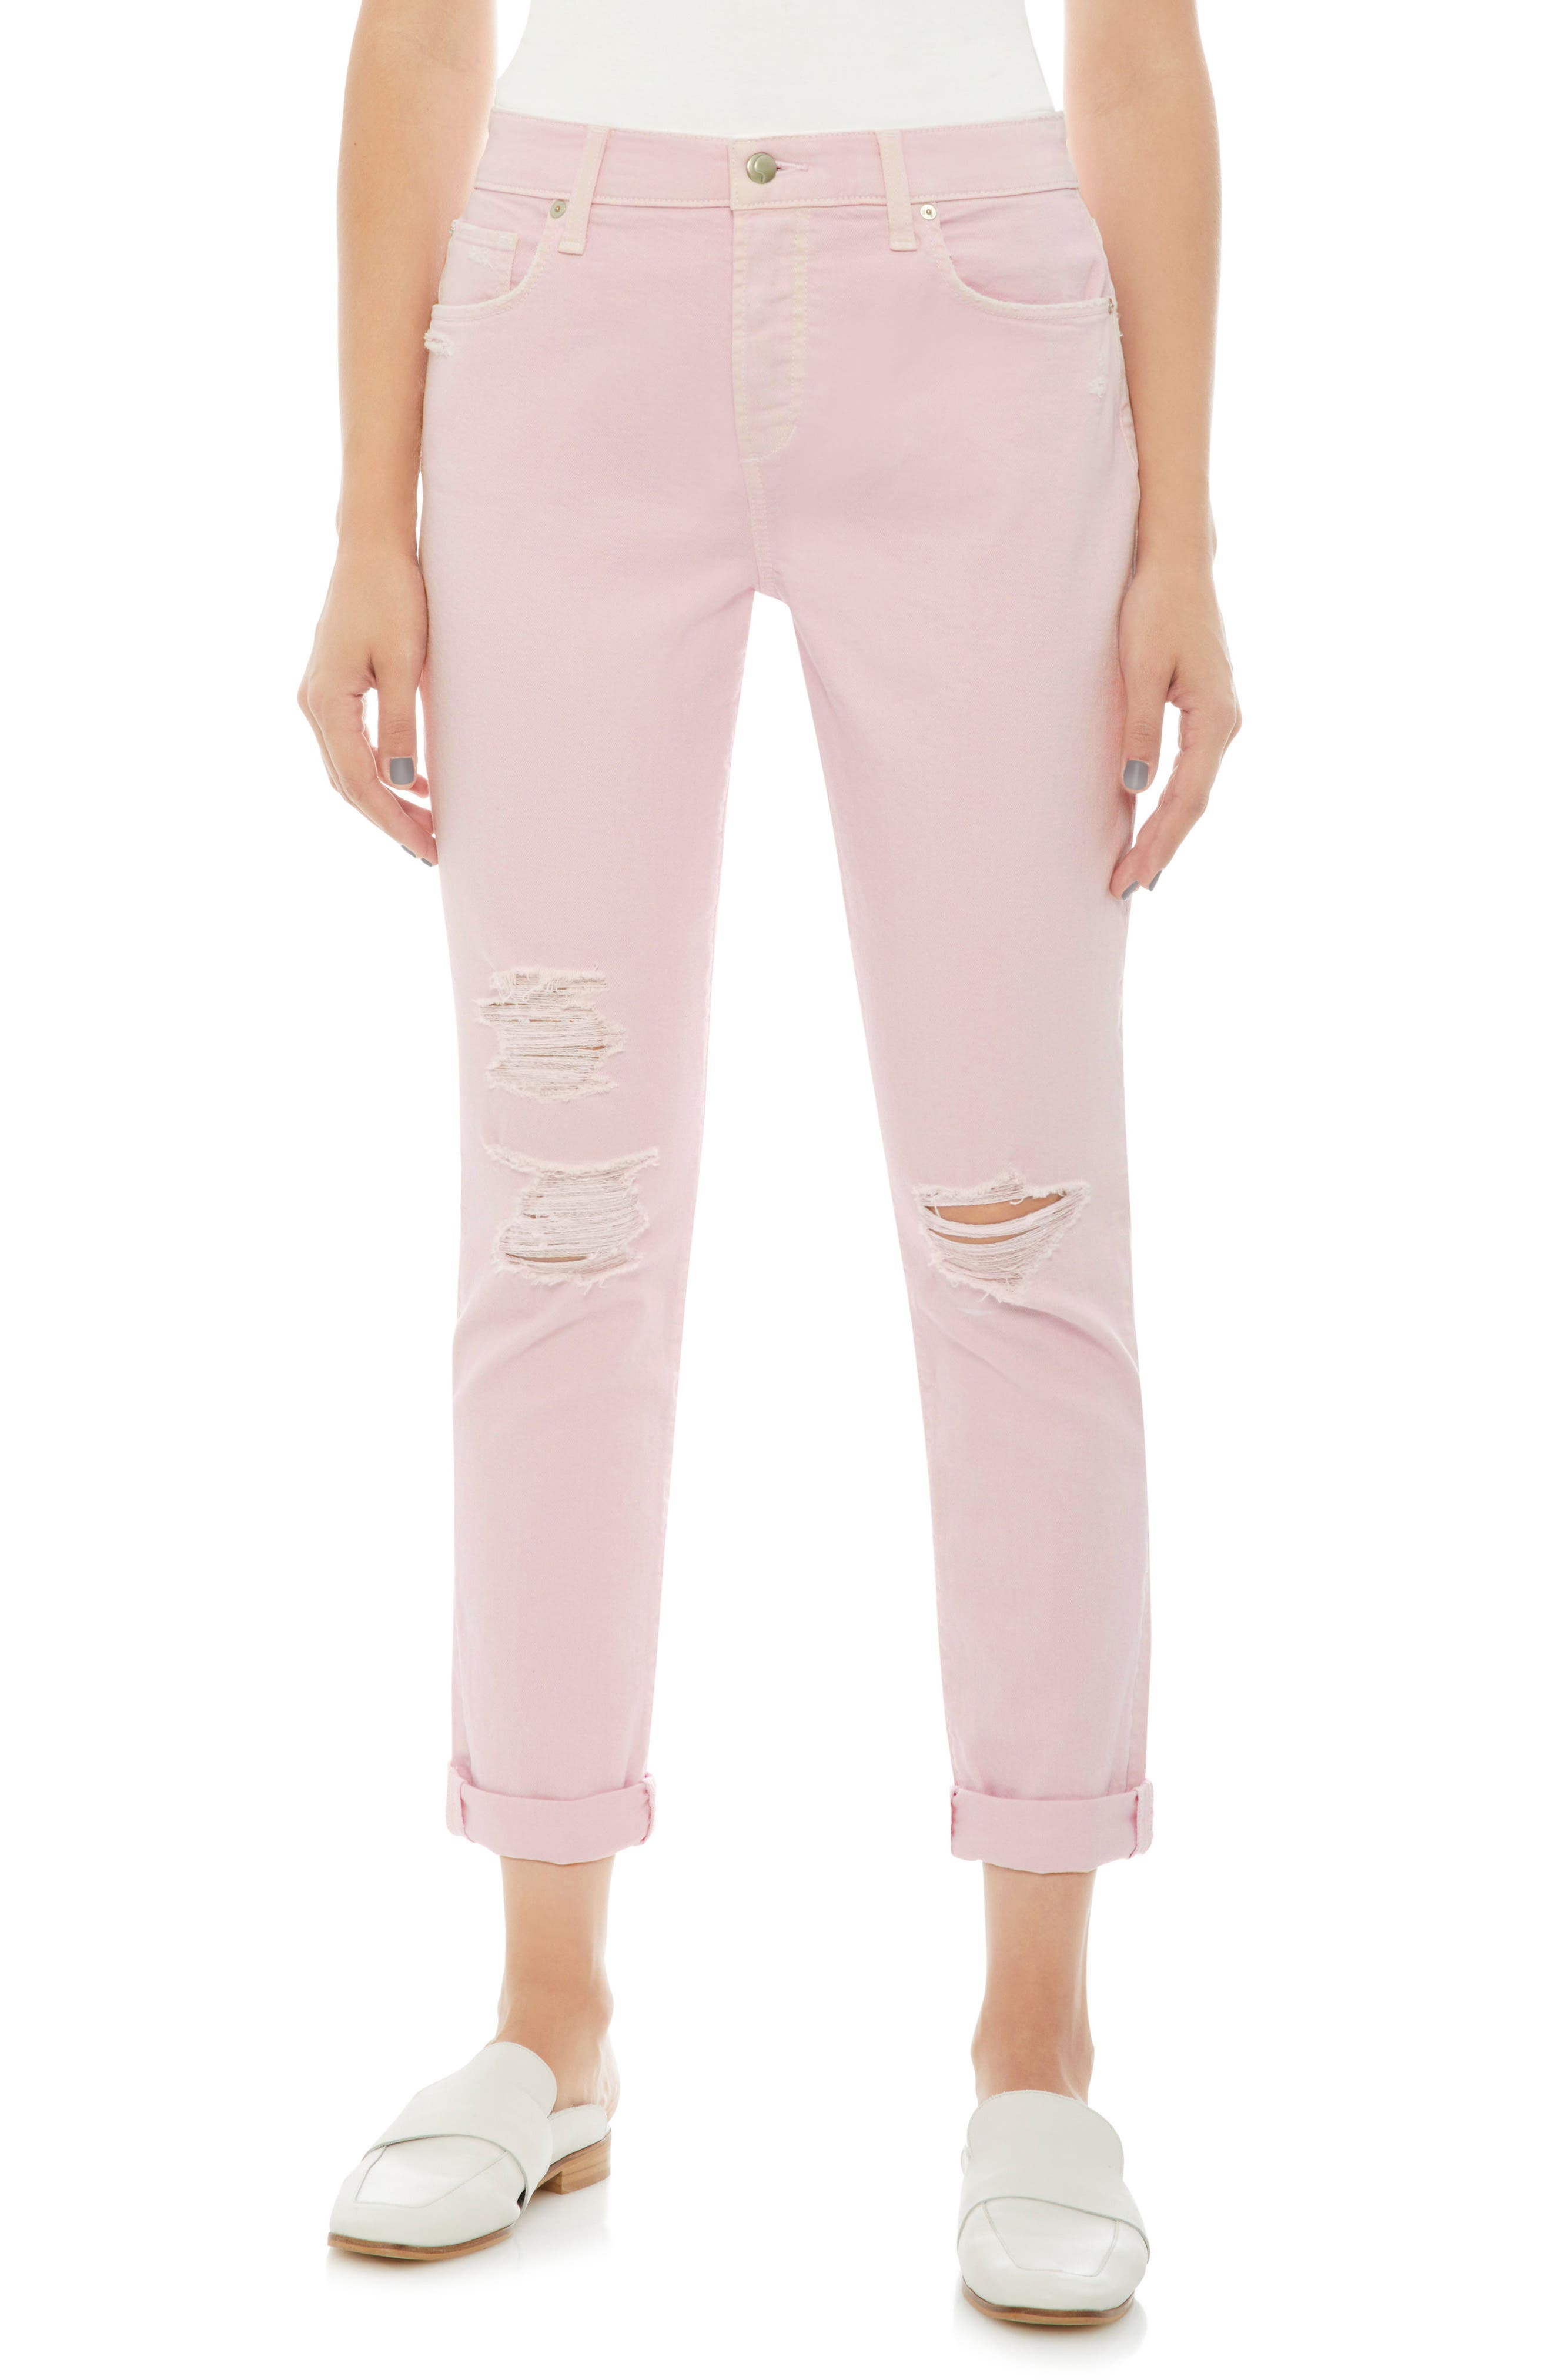 Smith Ripped High Waist Crop Slim Jeans,                         Main,                         color, Parfait Pink